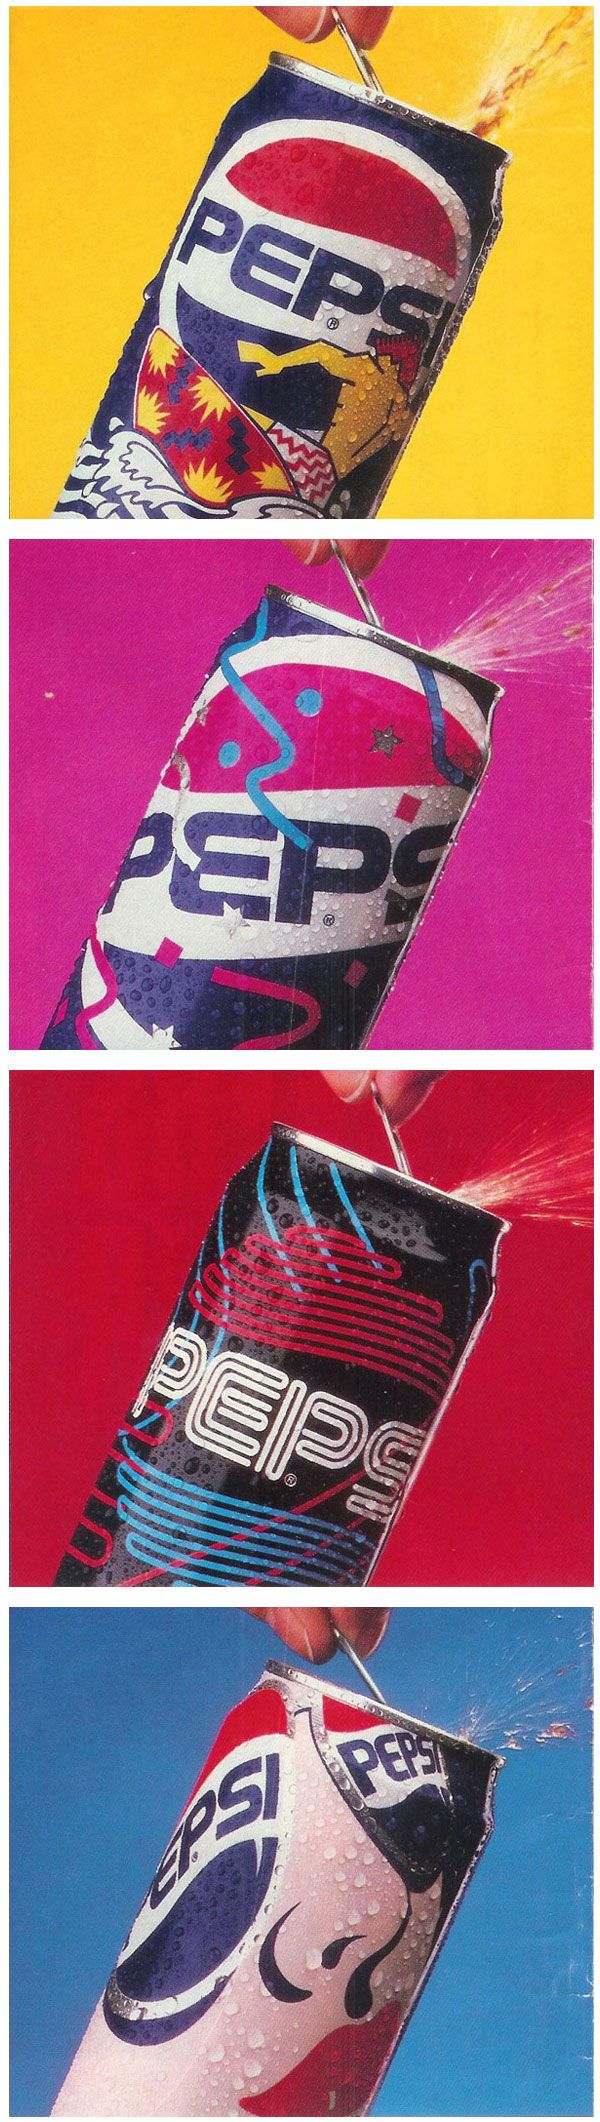 Pepsi Cool Cans which Pepsi marketed back in the 90s